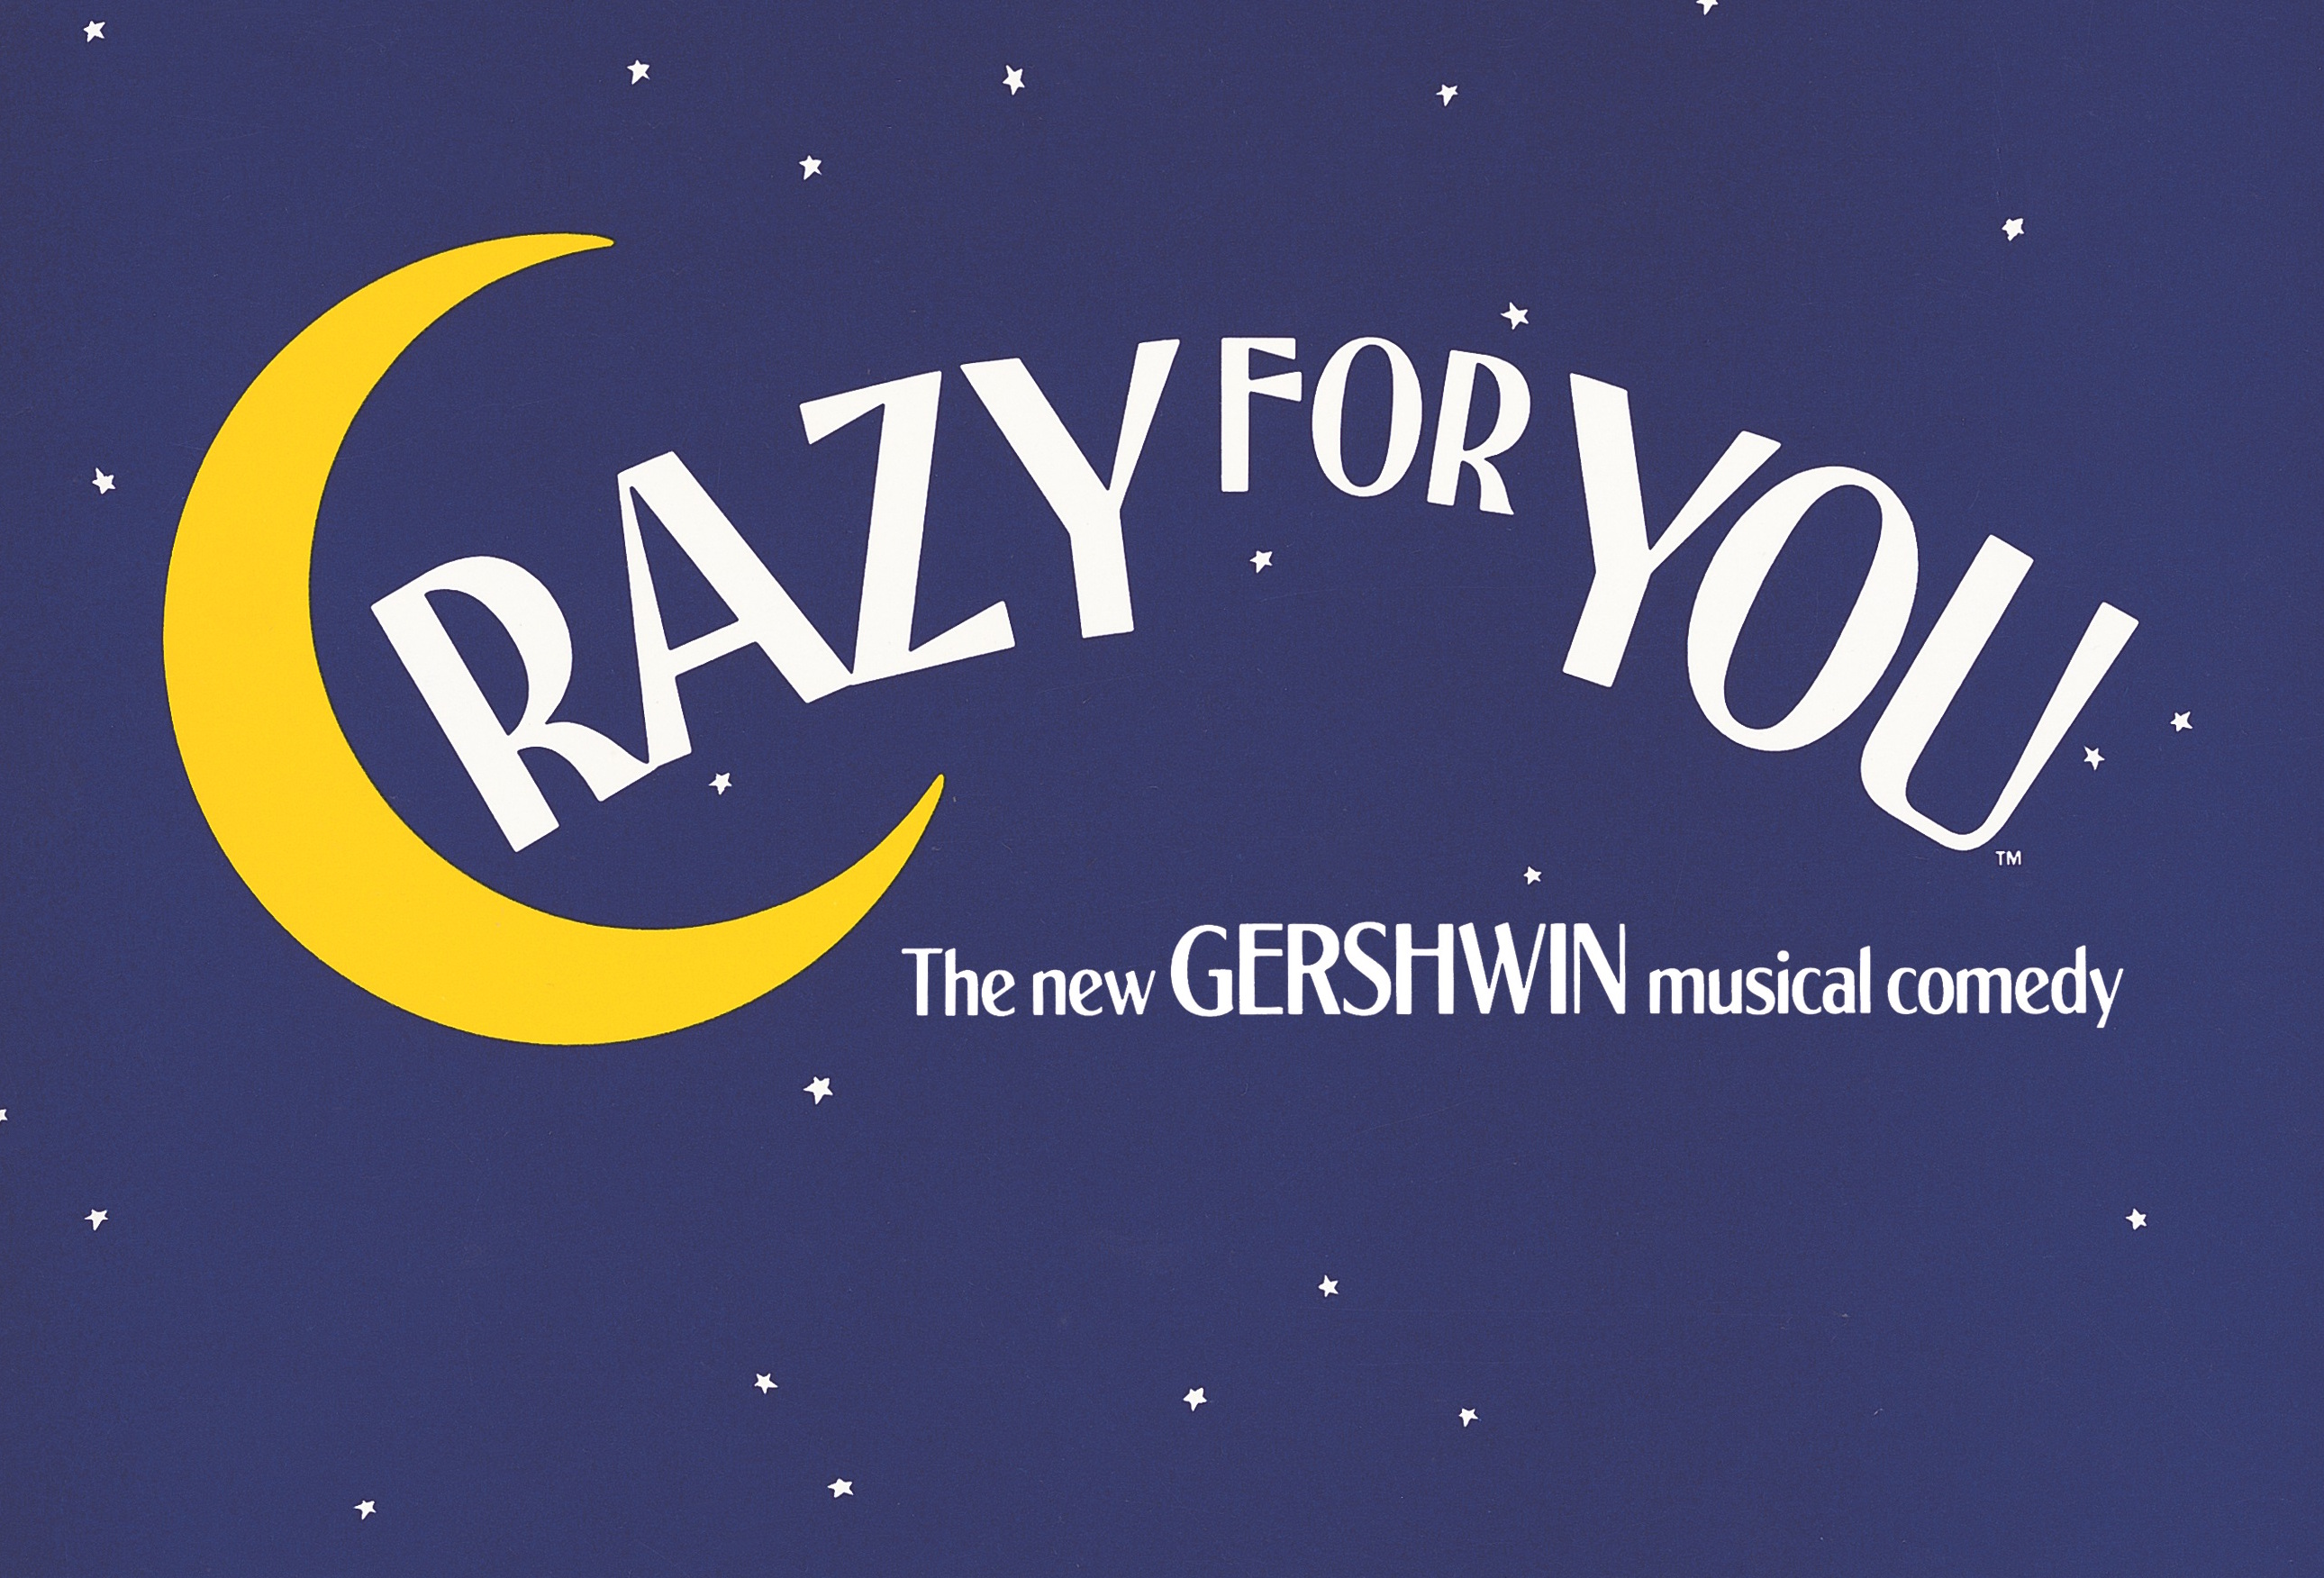 Crazy for You April 5-8